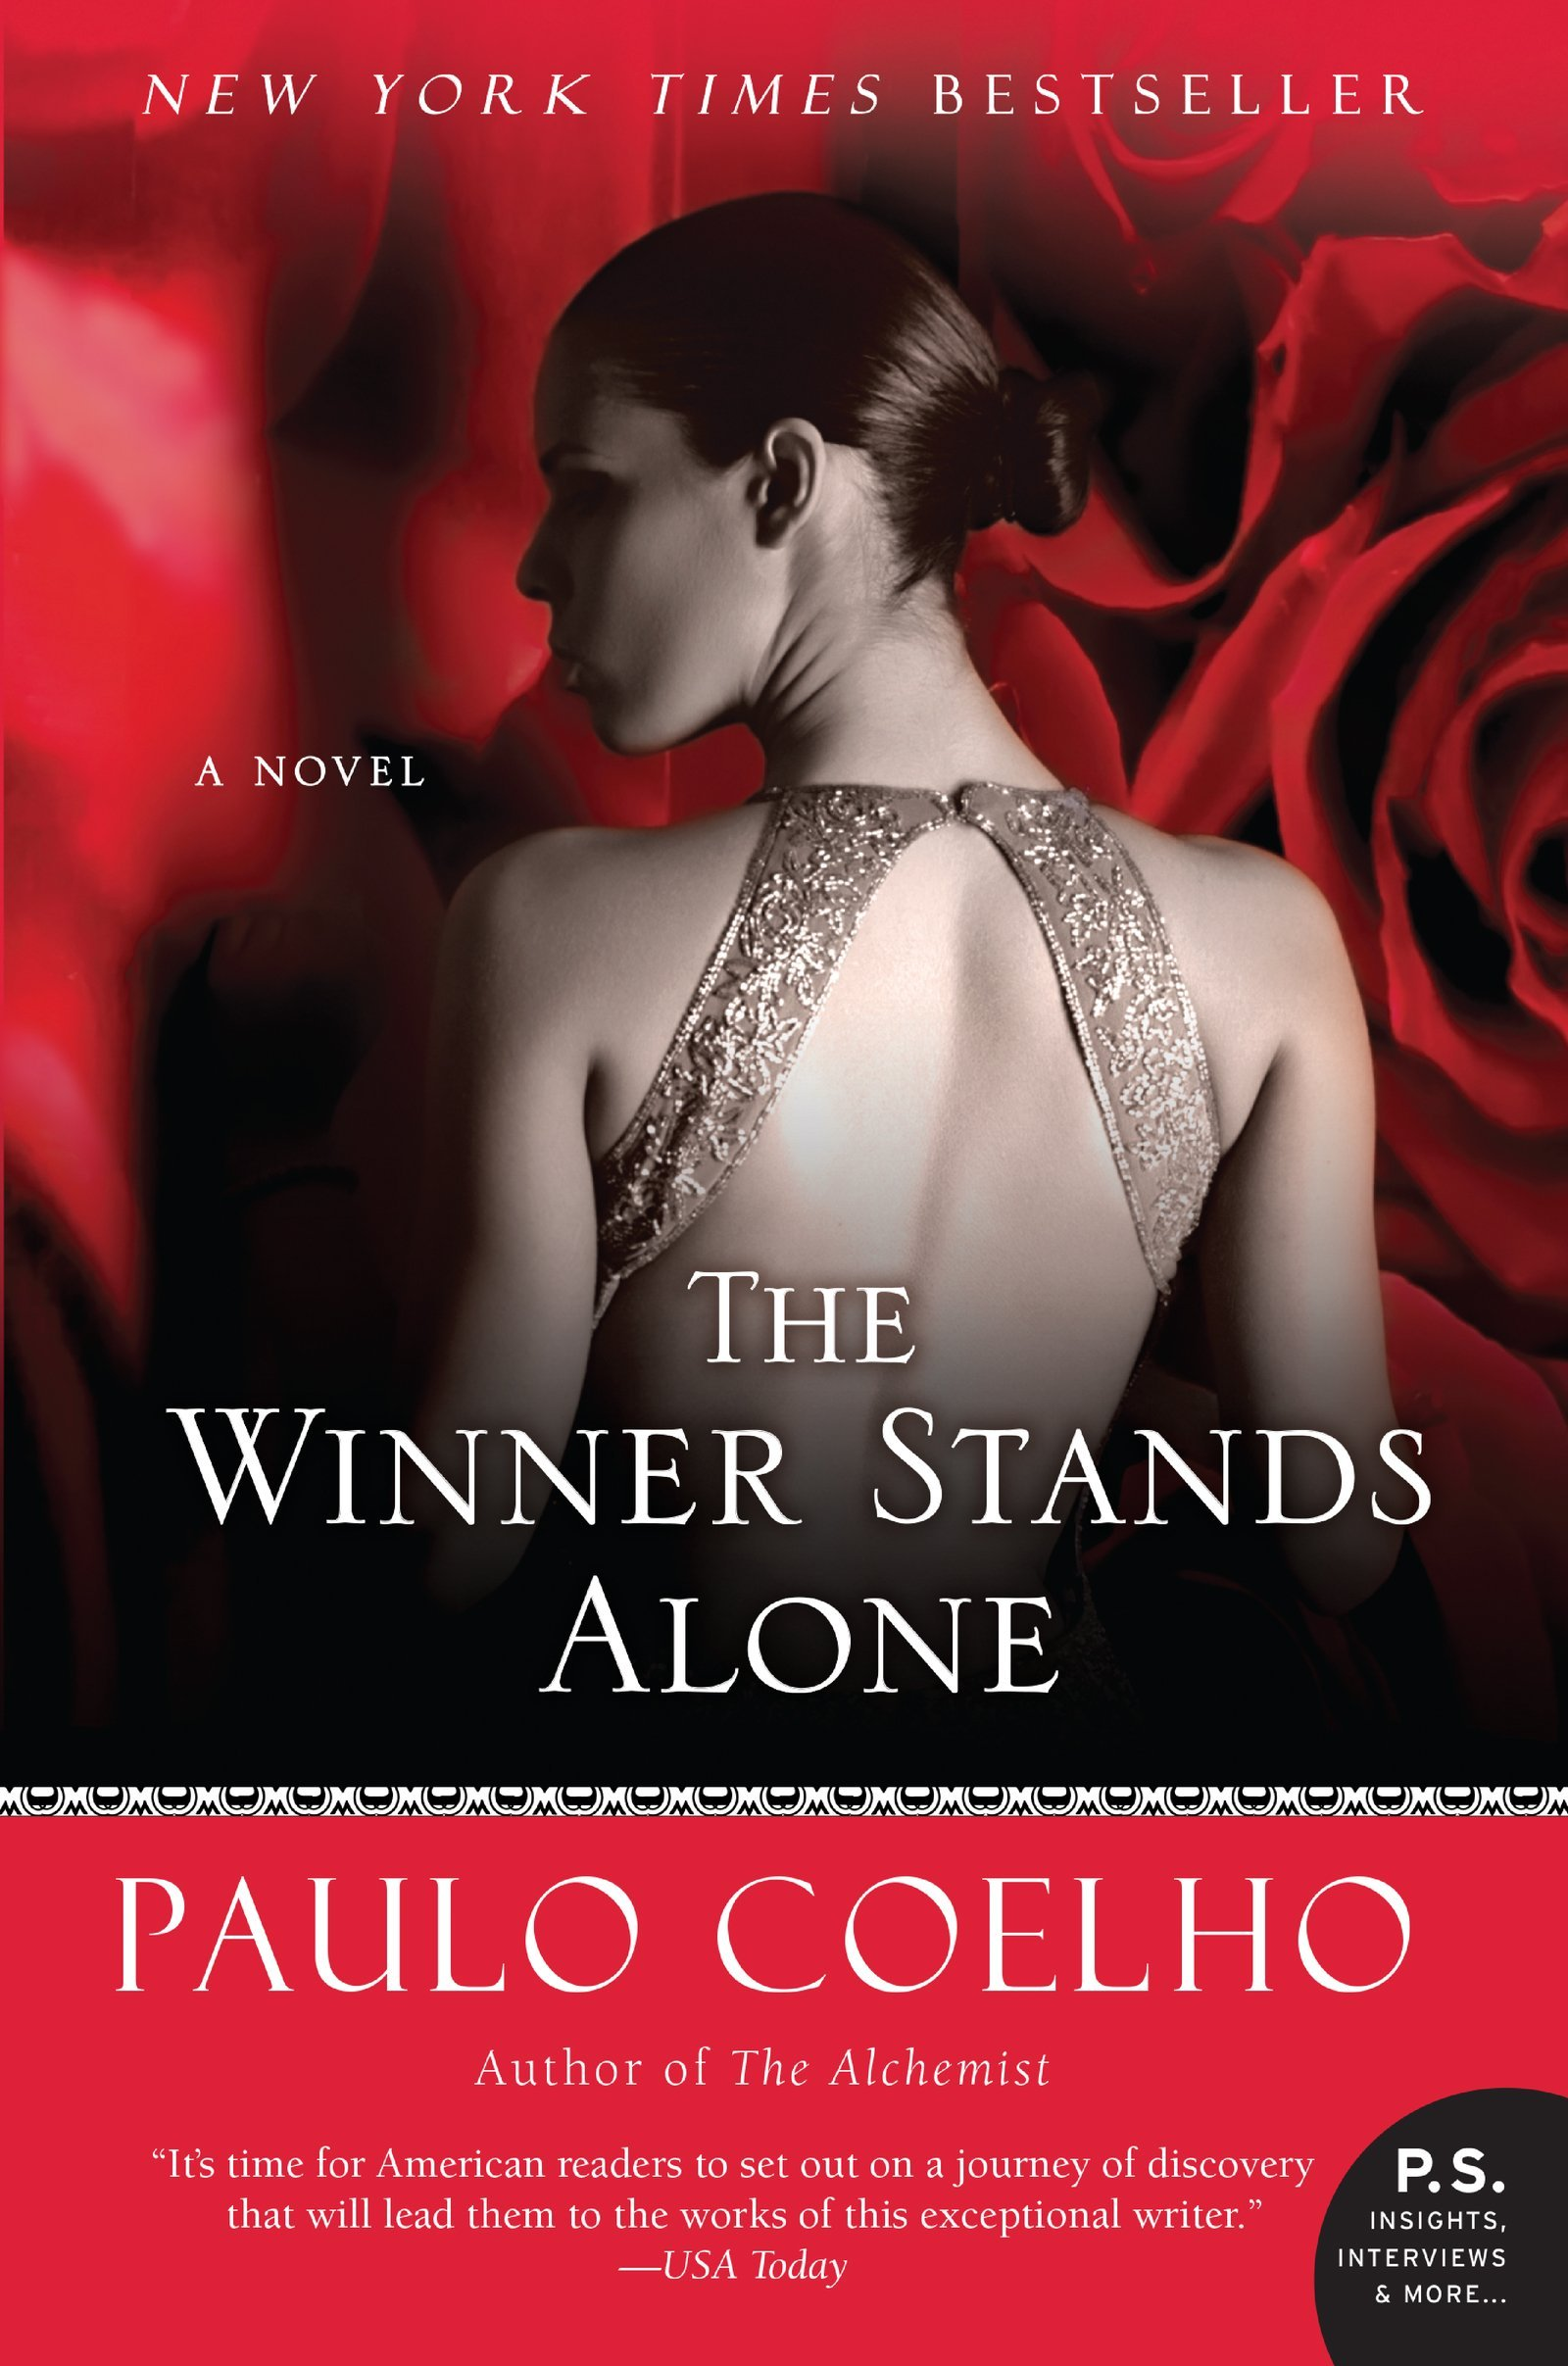 com the winner stands alone a novel p s  com the winner stands alone a novel p s 9780061750526 paulo coelho books